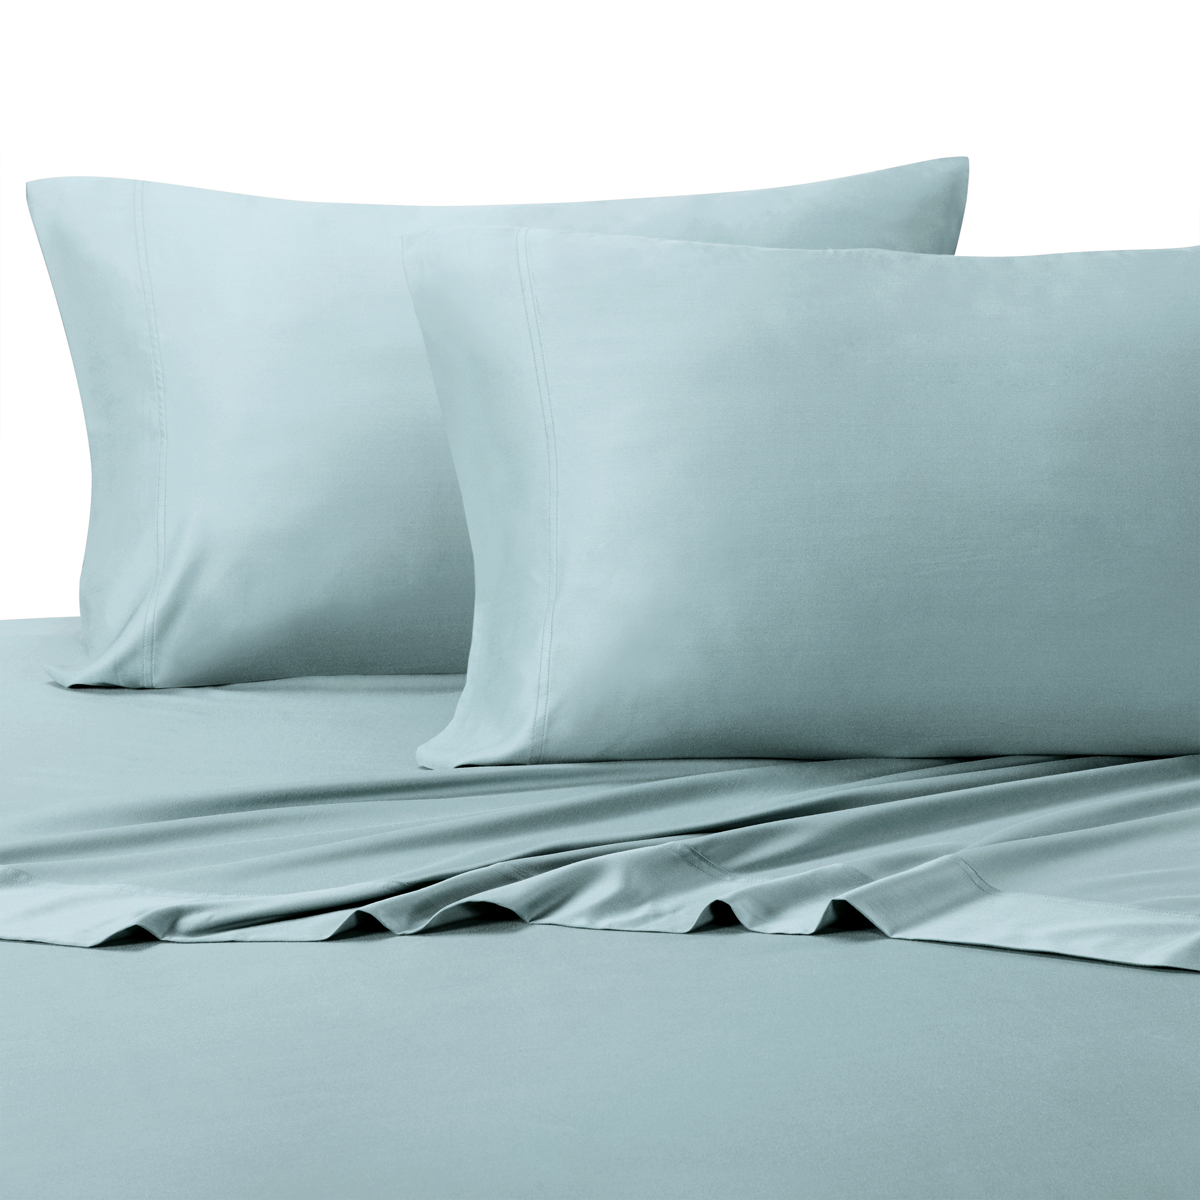 Luxury Bamboo Sheets Super Soft & Cool 100% Bamboo Viscose Bed Sheet Sets With Deep Pockets - Queen Size- White